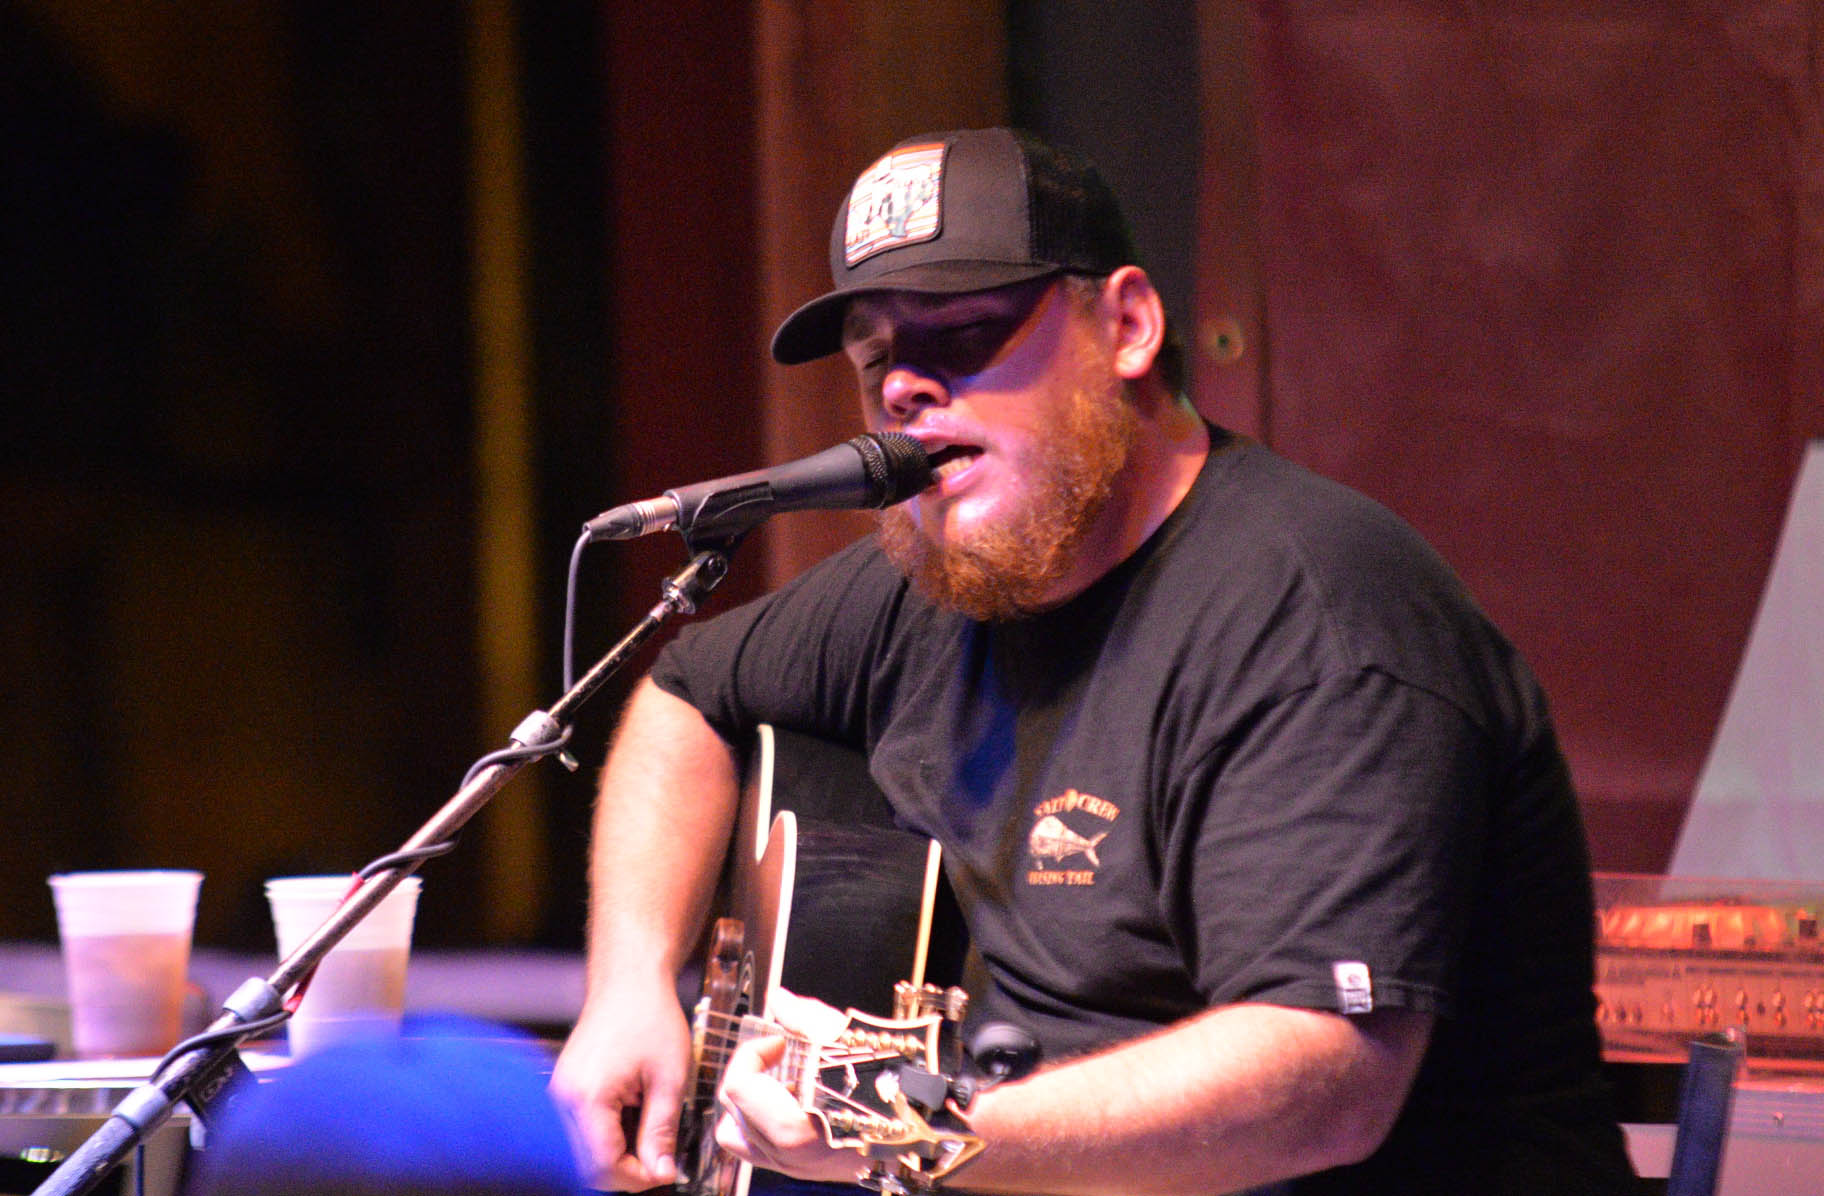 New Face of Country Featuring Luke Combs – 8.10.17